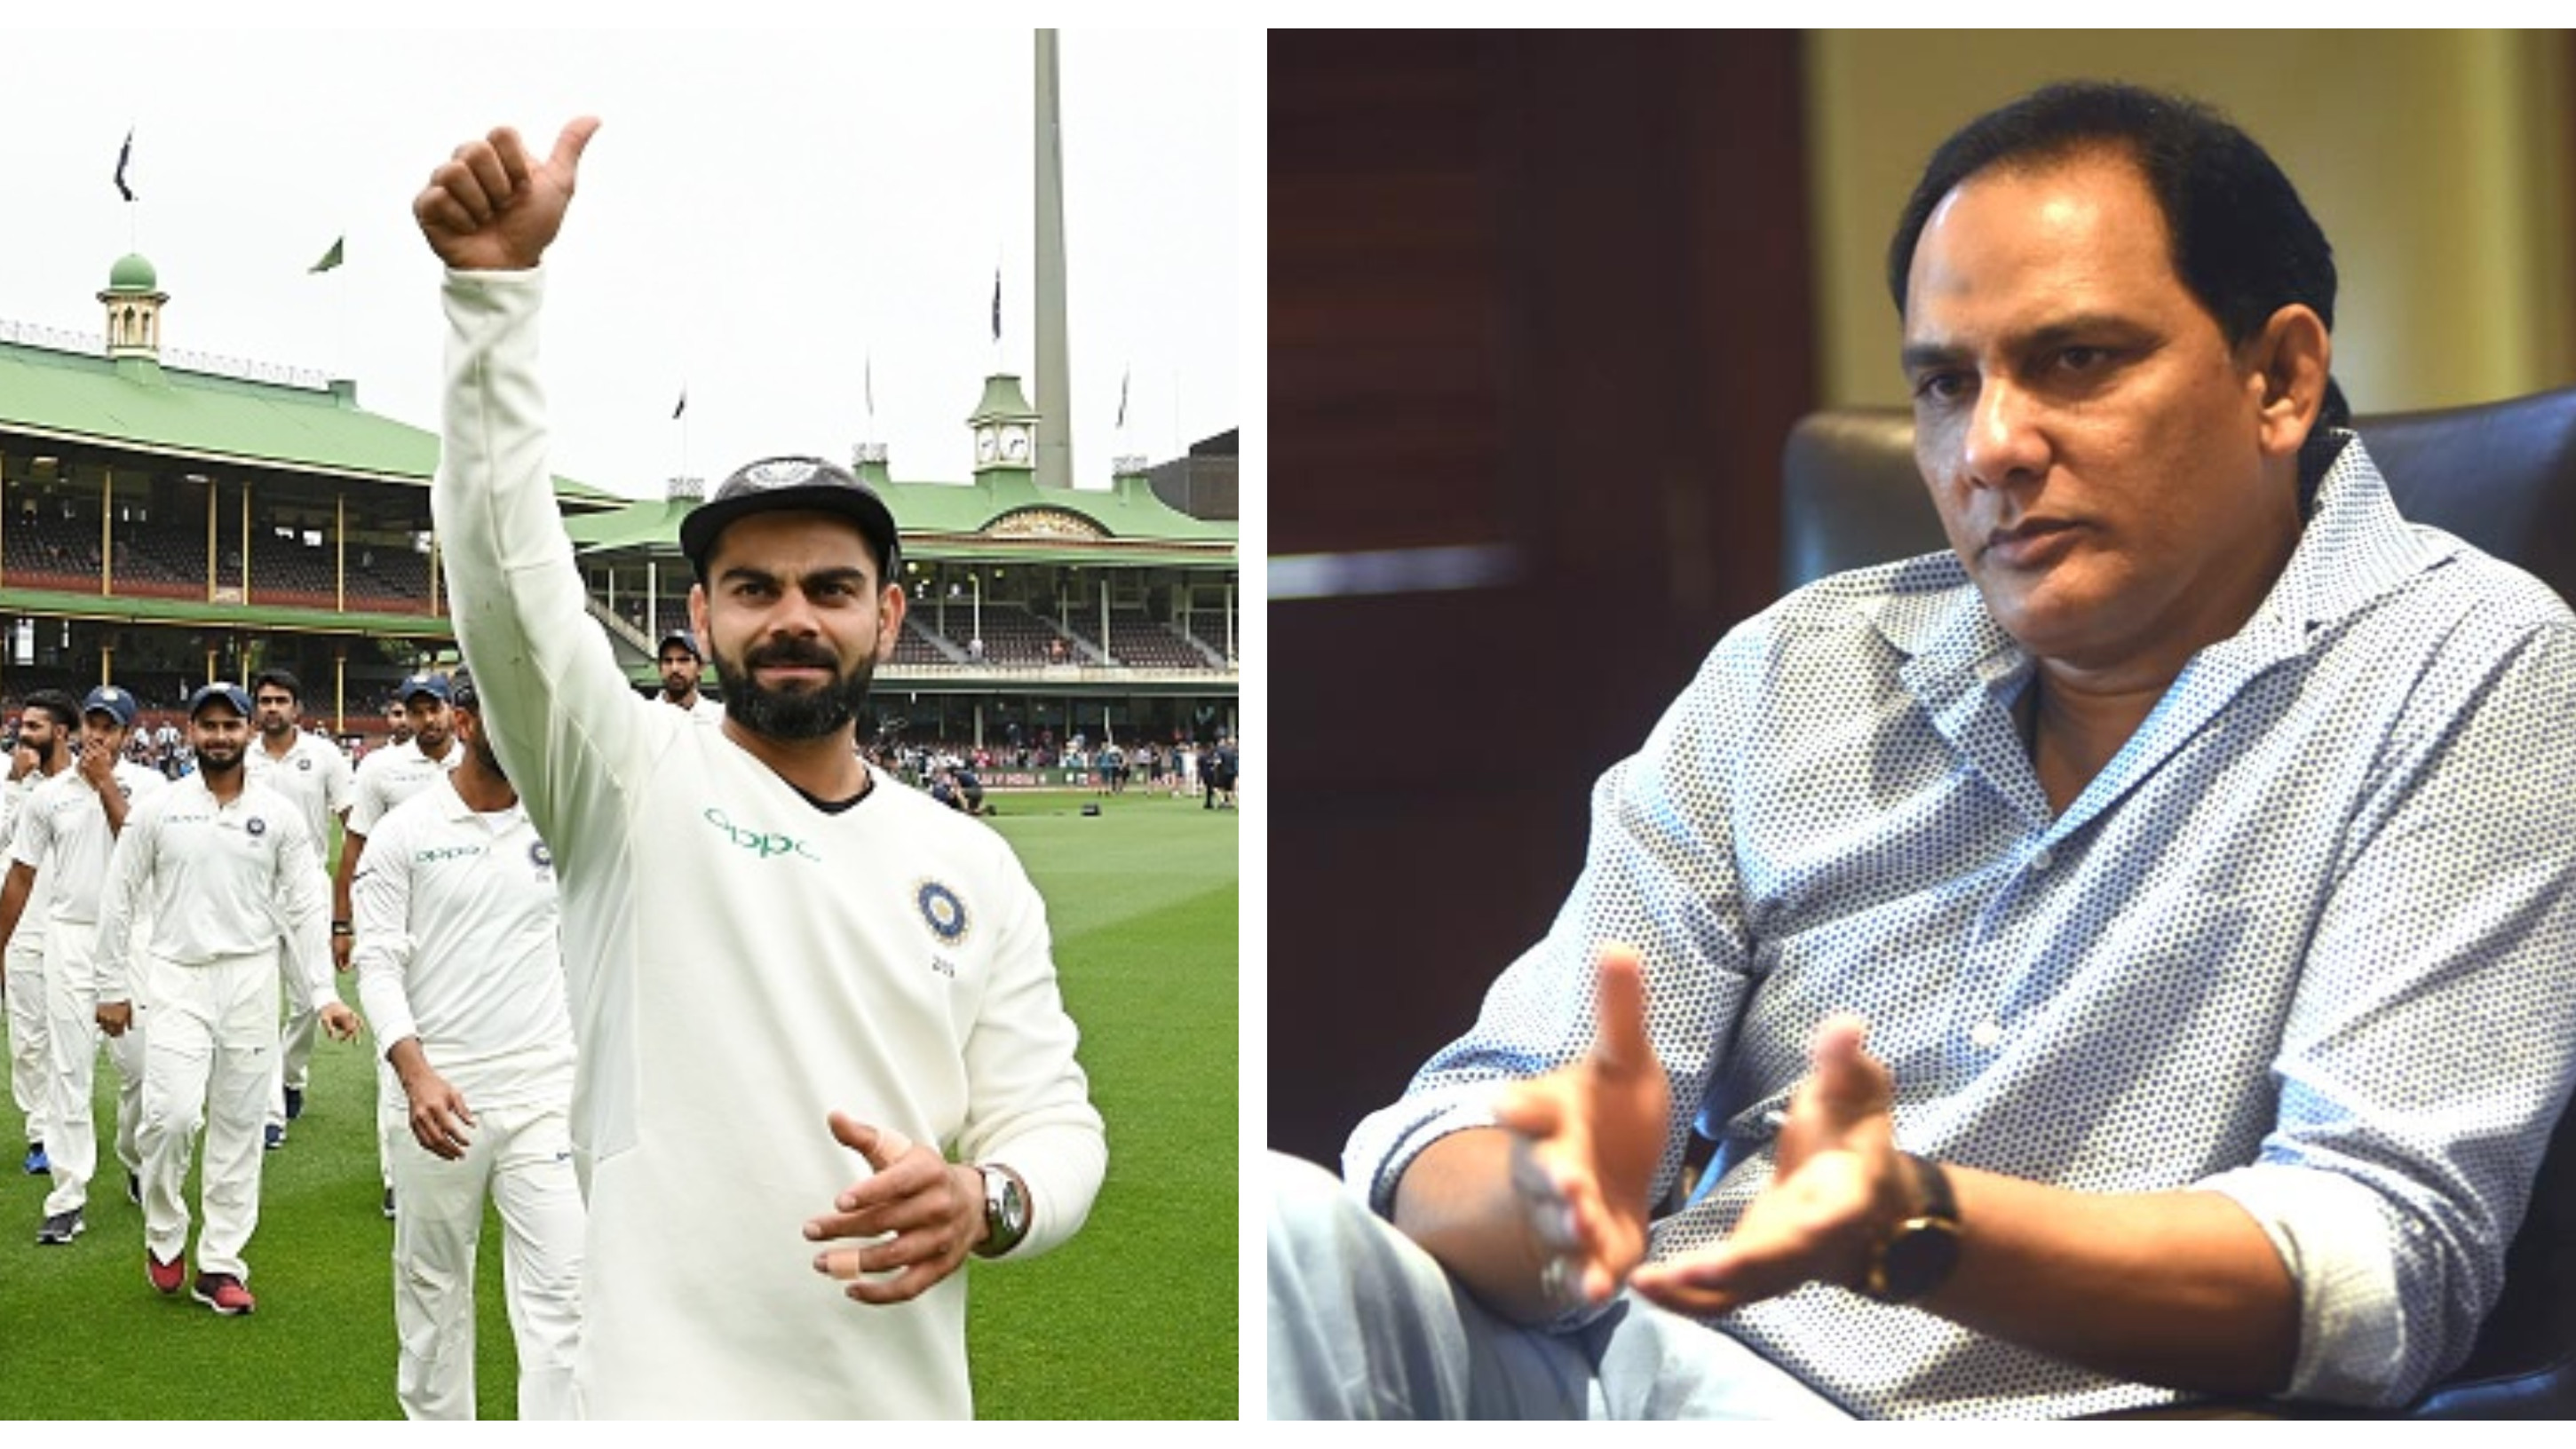 AUS v IND 2018-19: Virat Kohli's men have demoralised Australia with their maiden Test series win, says Azharuddin